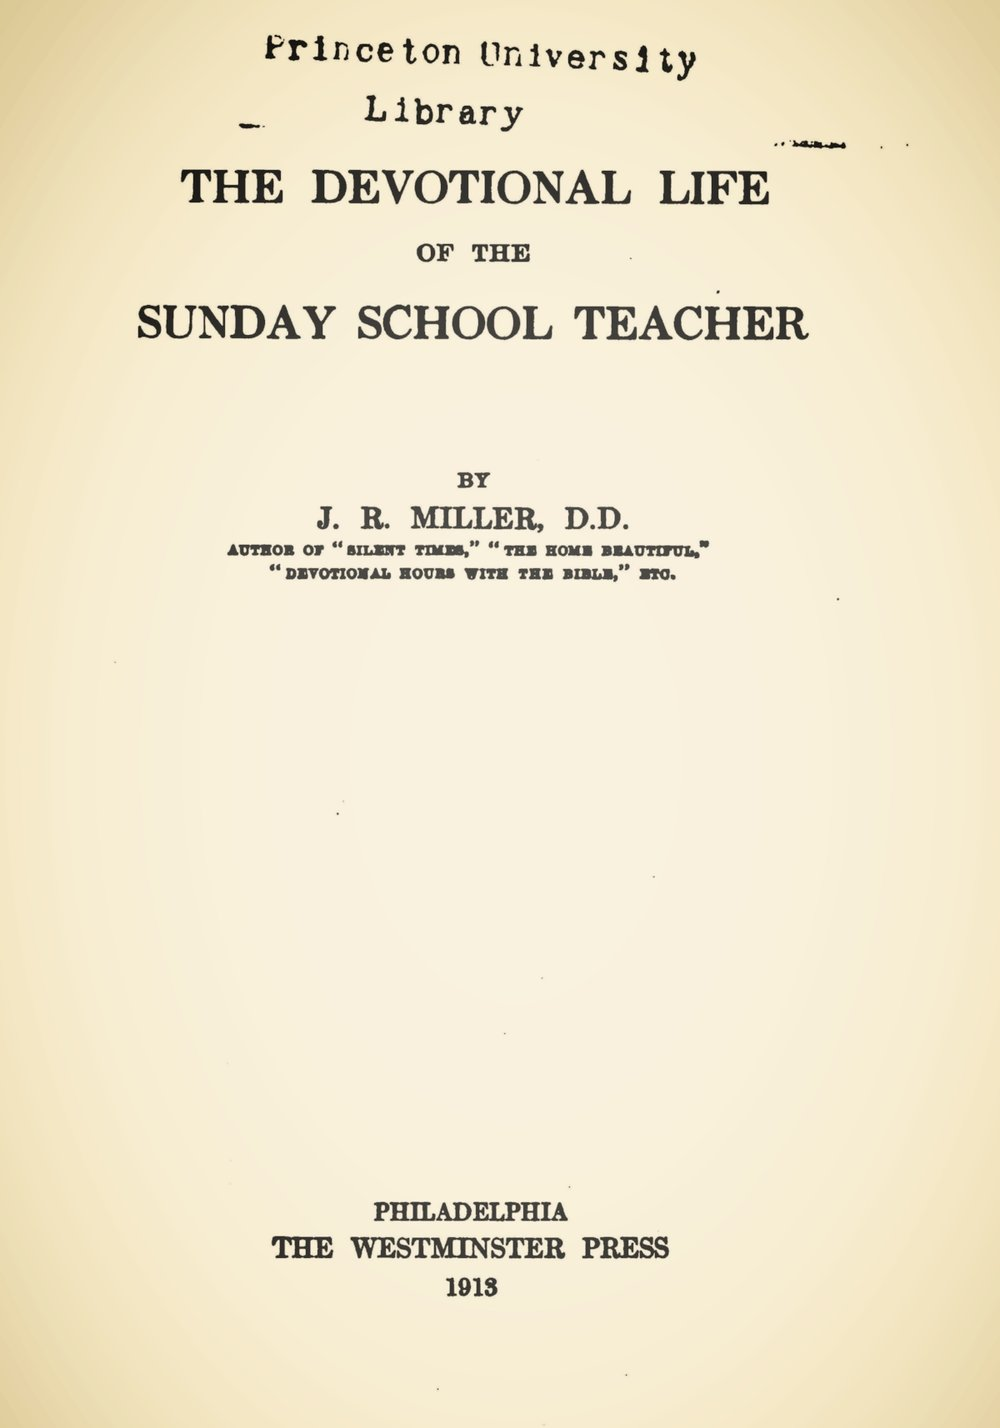 Miller, James Russell, The Devotional Life of the Sunday School Teacher Title Page.jpg